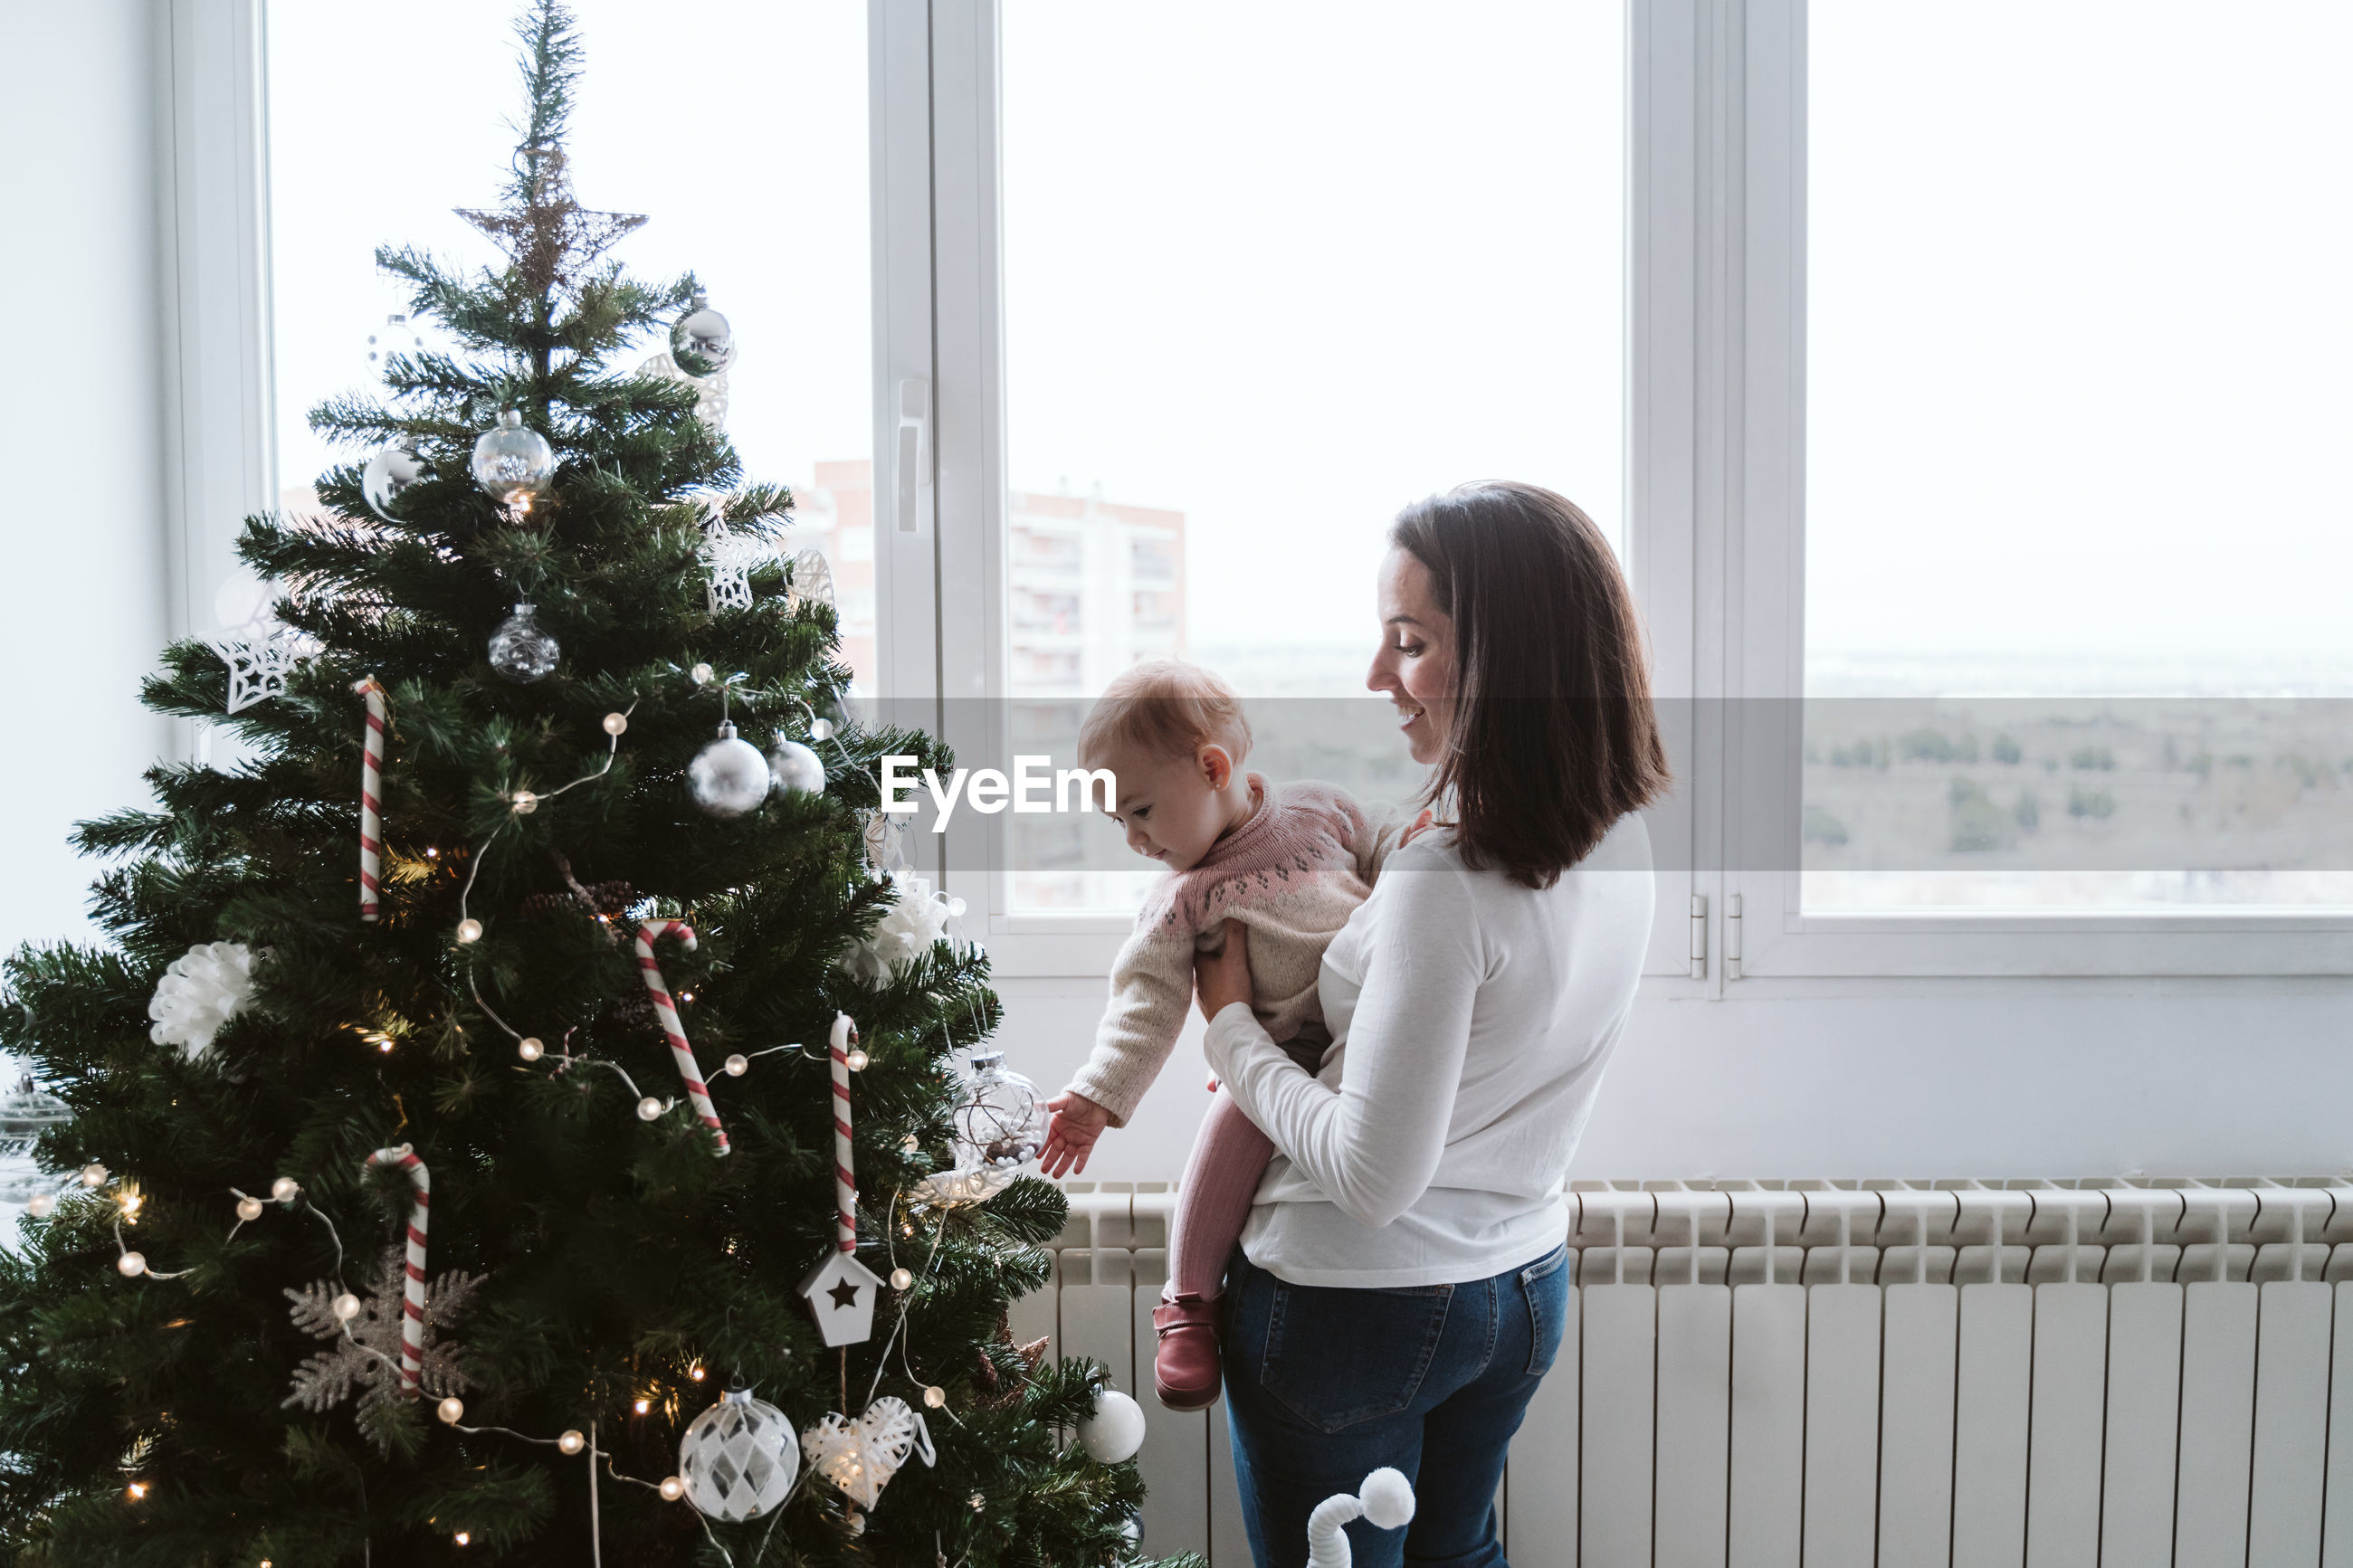 Mother with baby girl at home during christmas